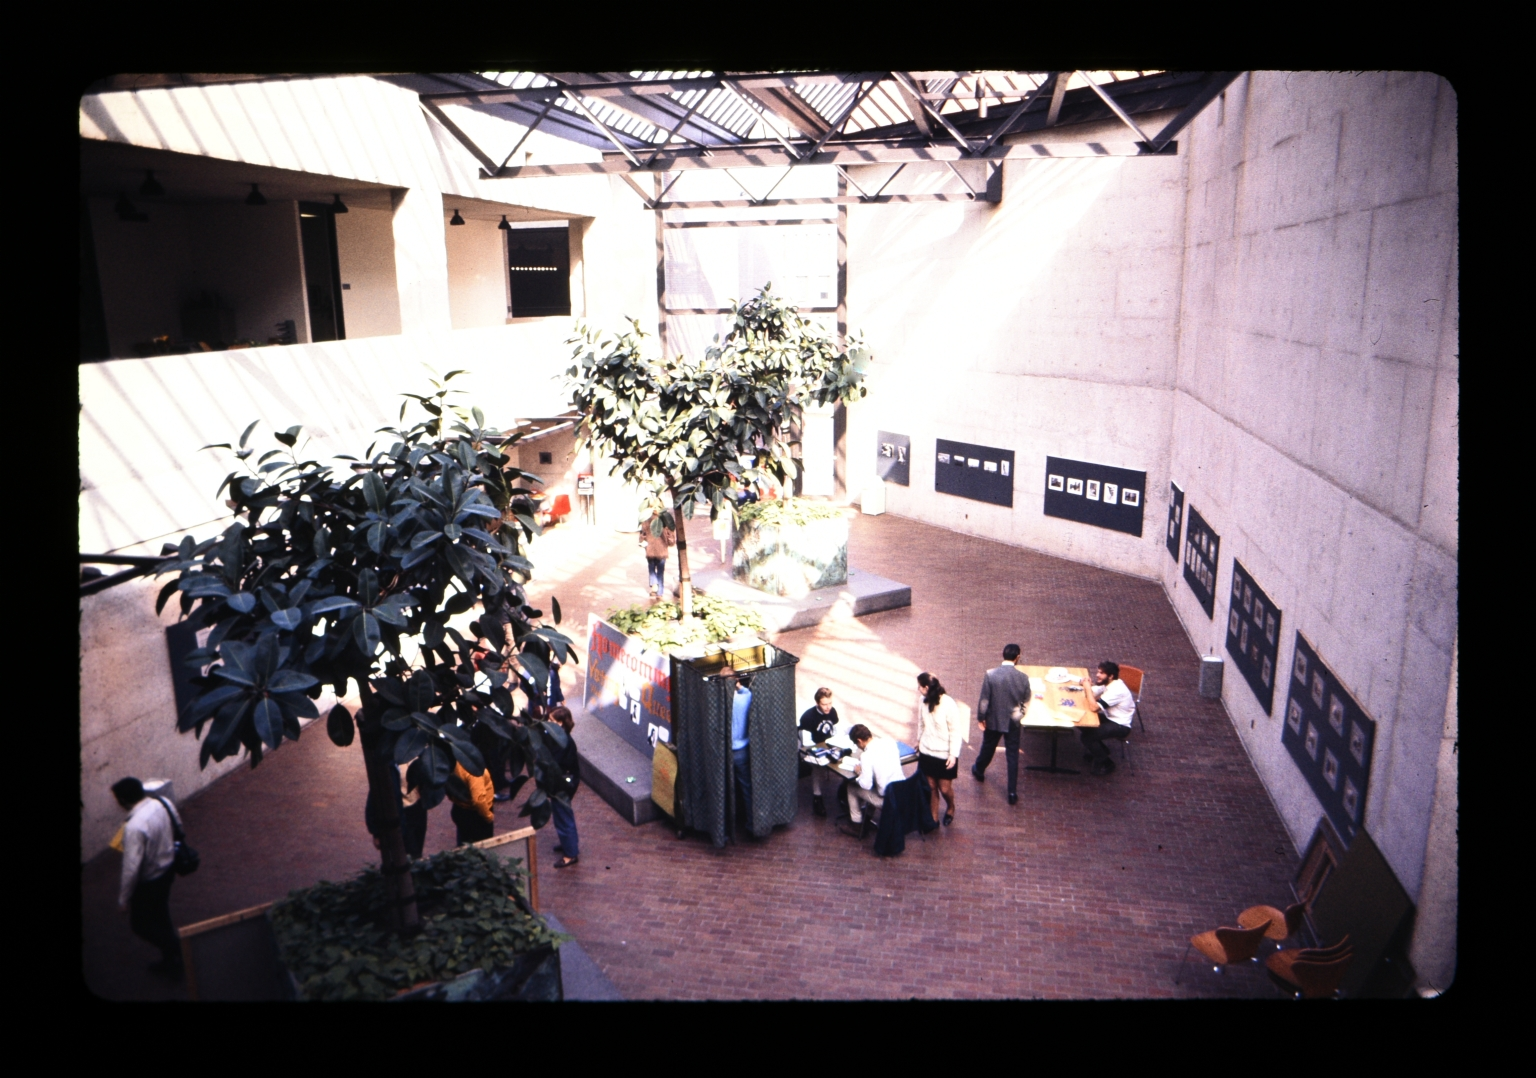 Second floor view looking down onto the Student Alumni Union lobby